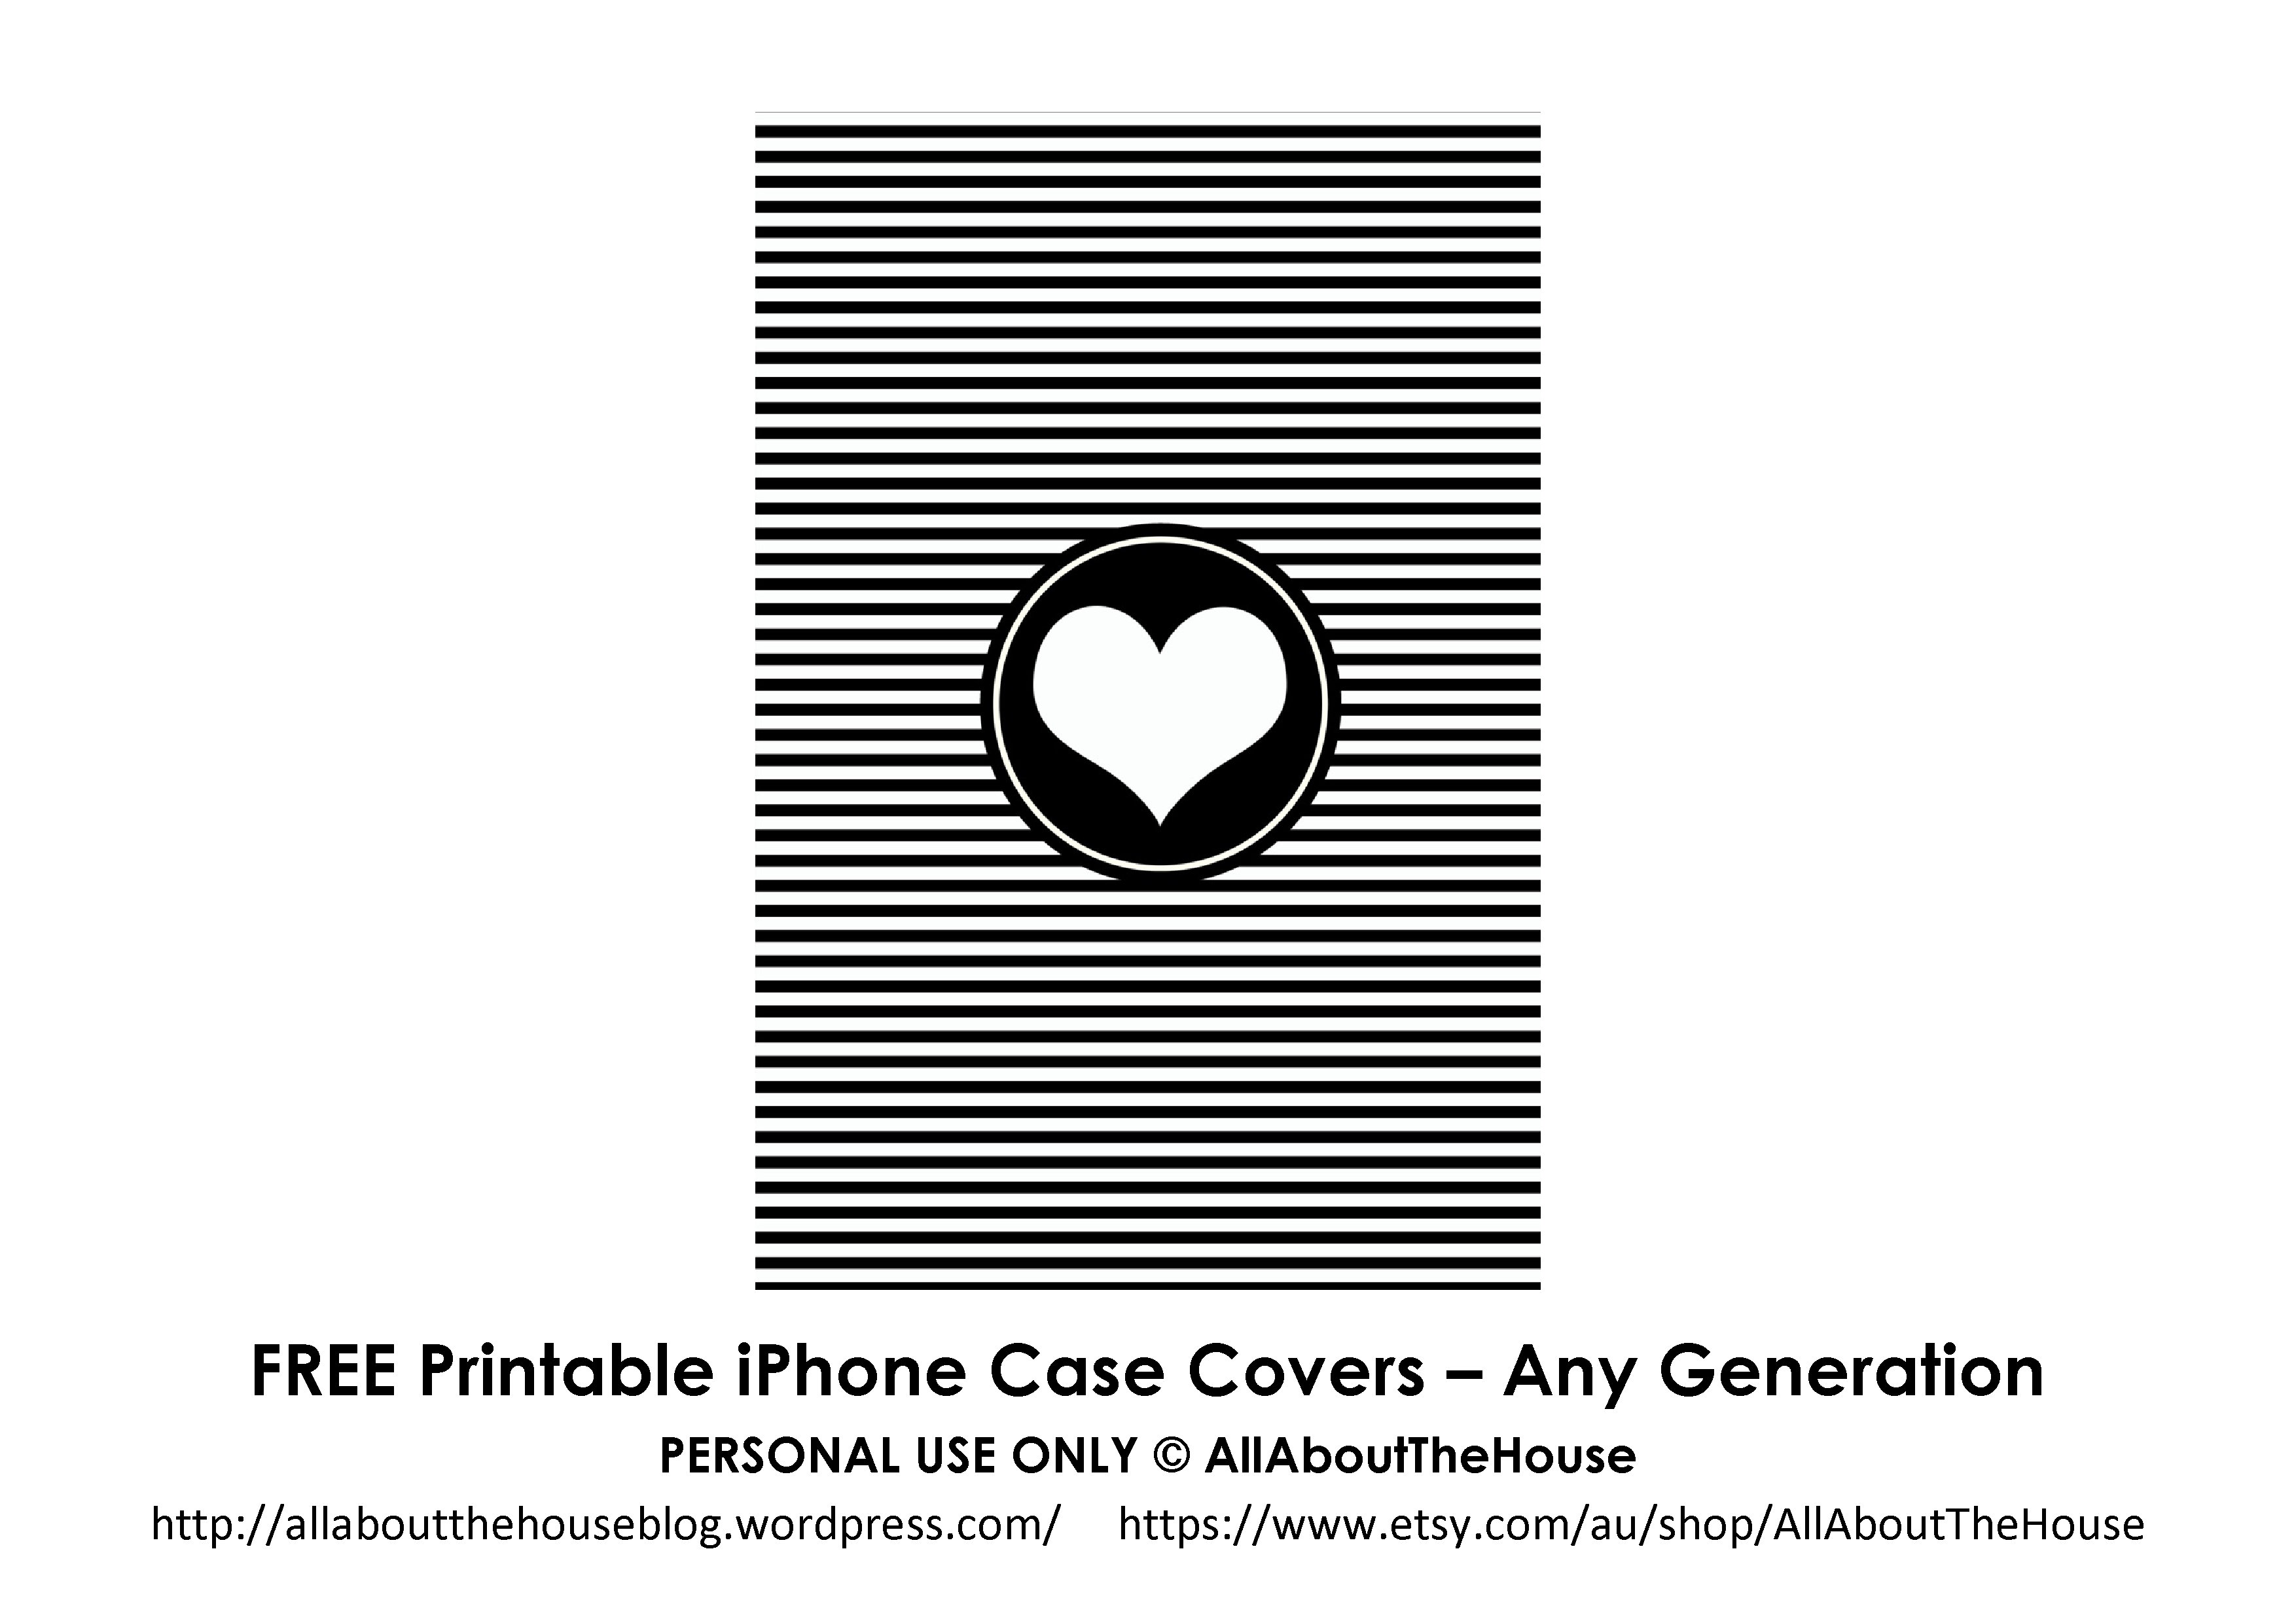 Printable iPhone case - AllAboutTheHouse